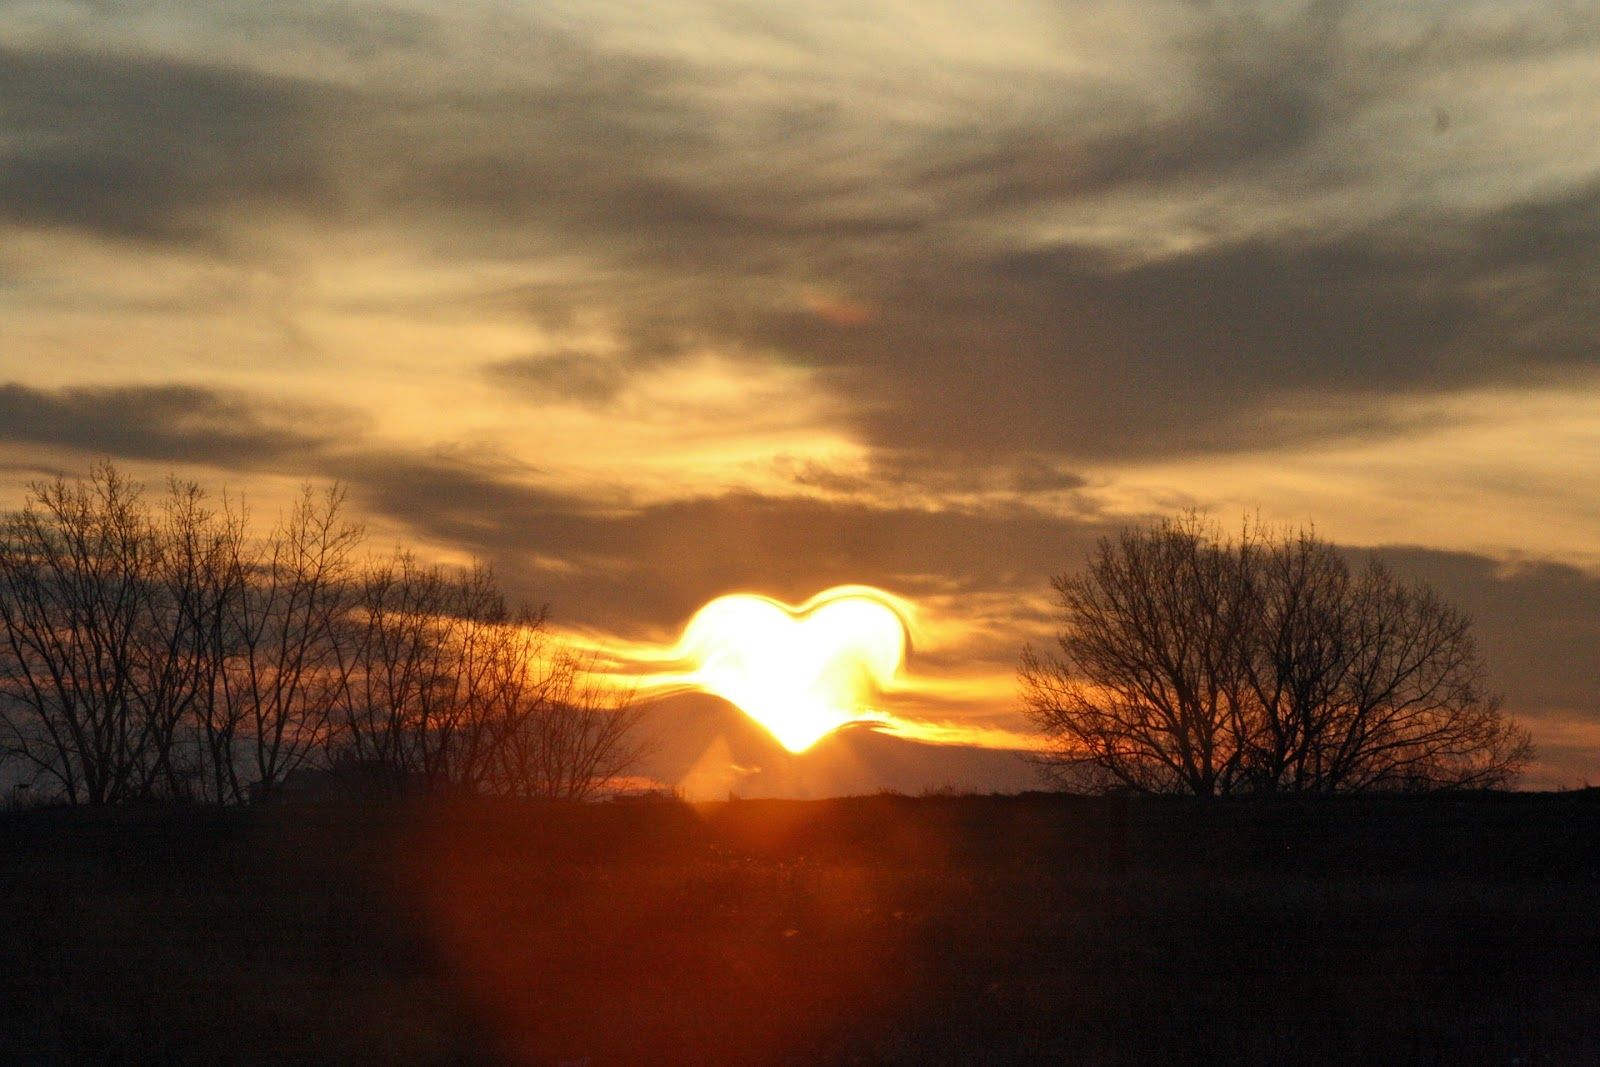 Heart Love Sun Rising early morning images